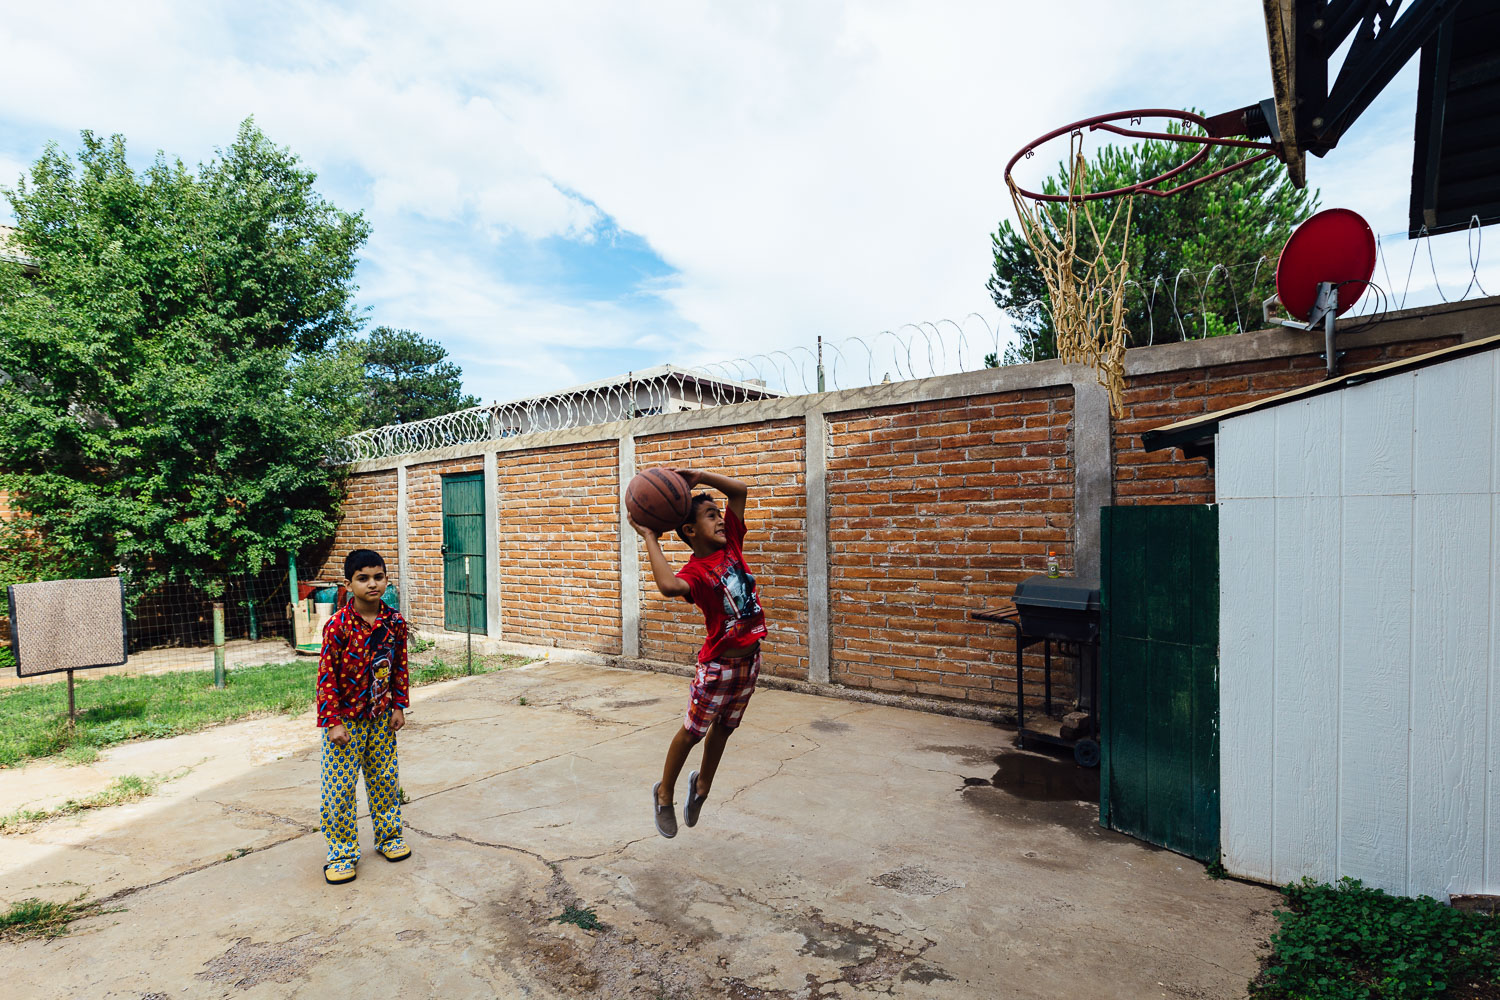 Patio-Basketball-Sports-Mexico-Family-Home-Durazo-Photography